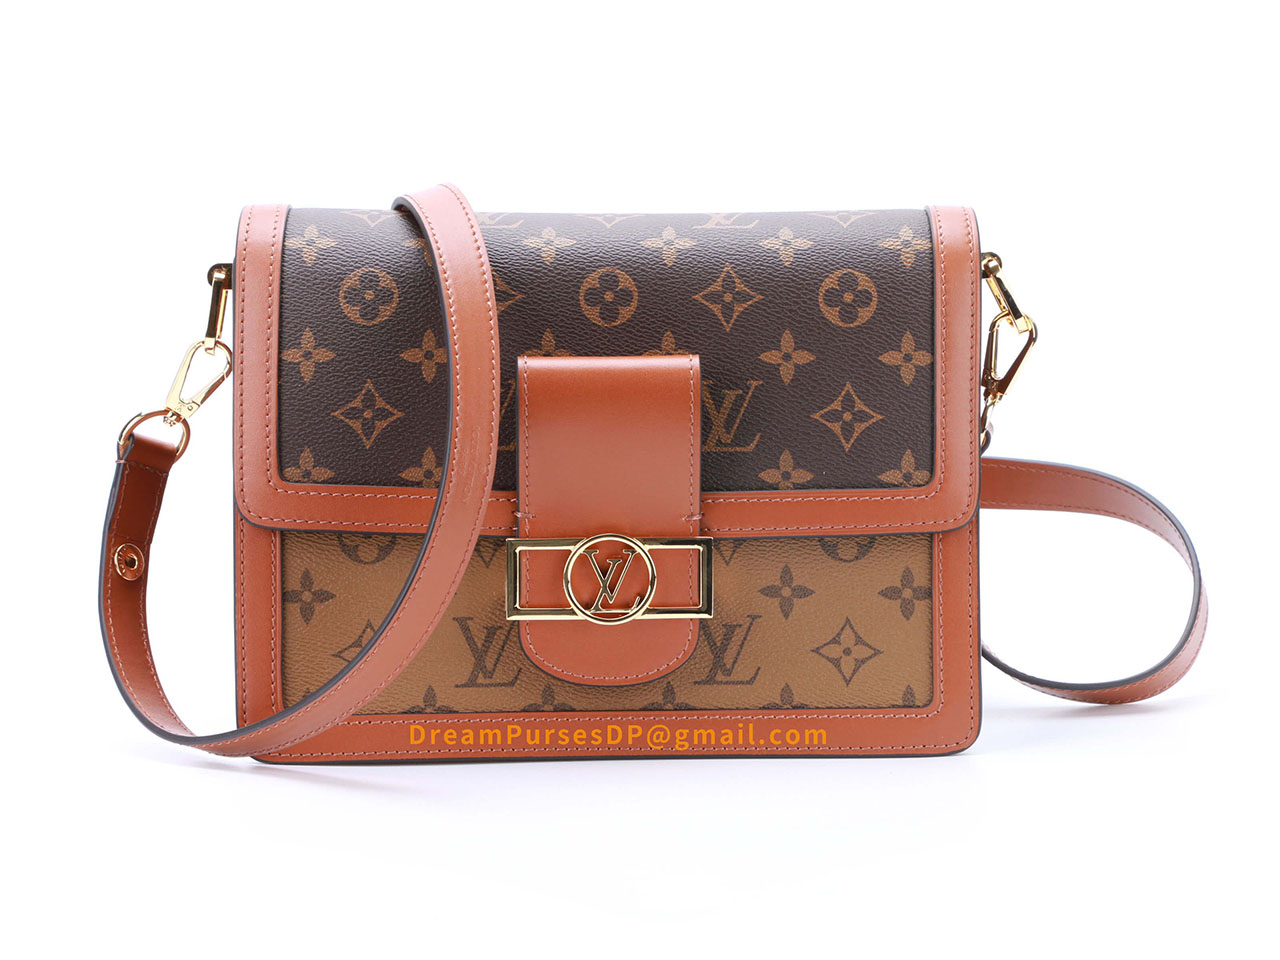 Louis Vuitton Dauphine MM M44391